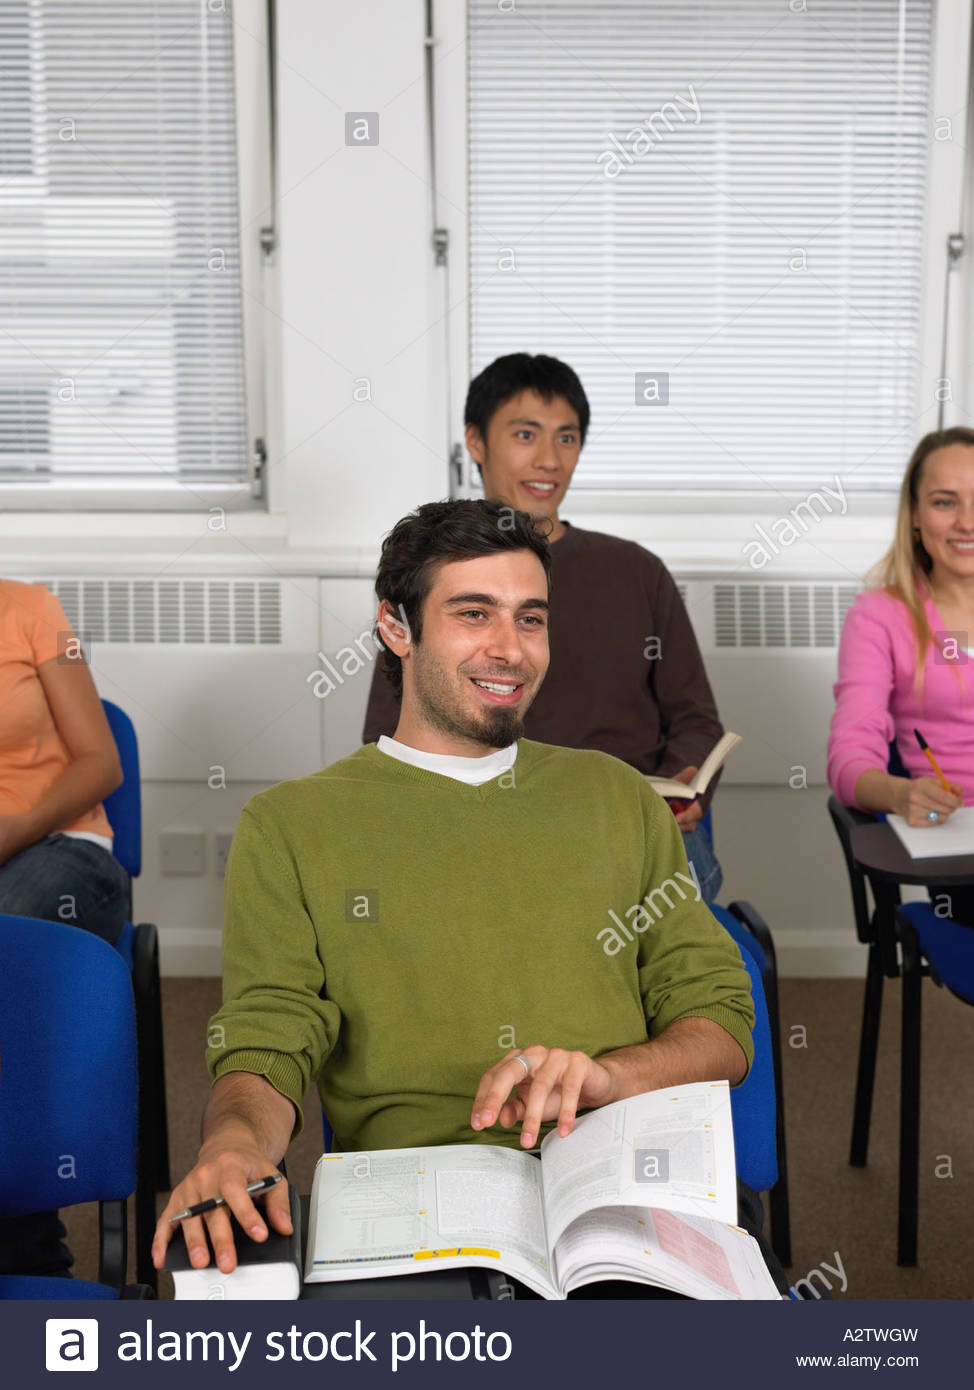 Students sat in a lesson - Stock Image